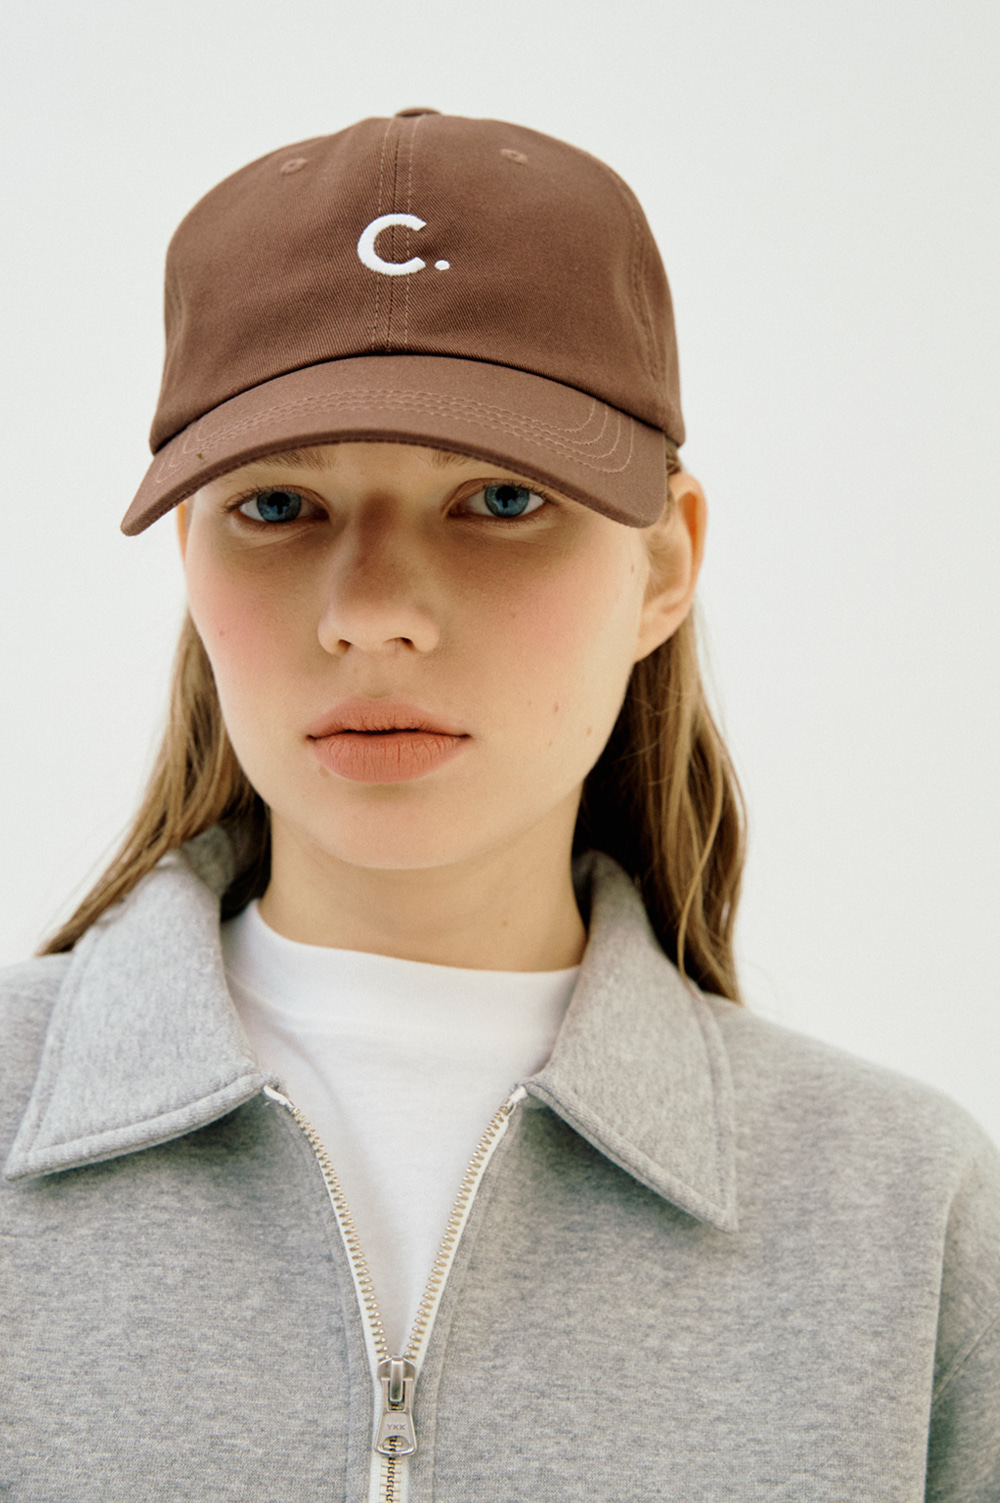 Basic Fit Ball Cap (Brown)